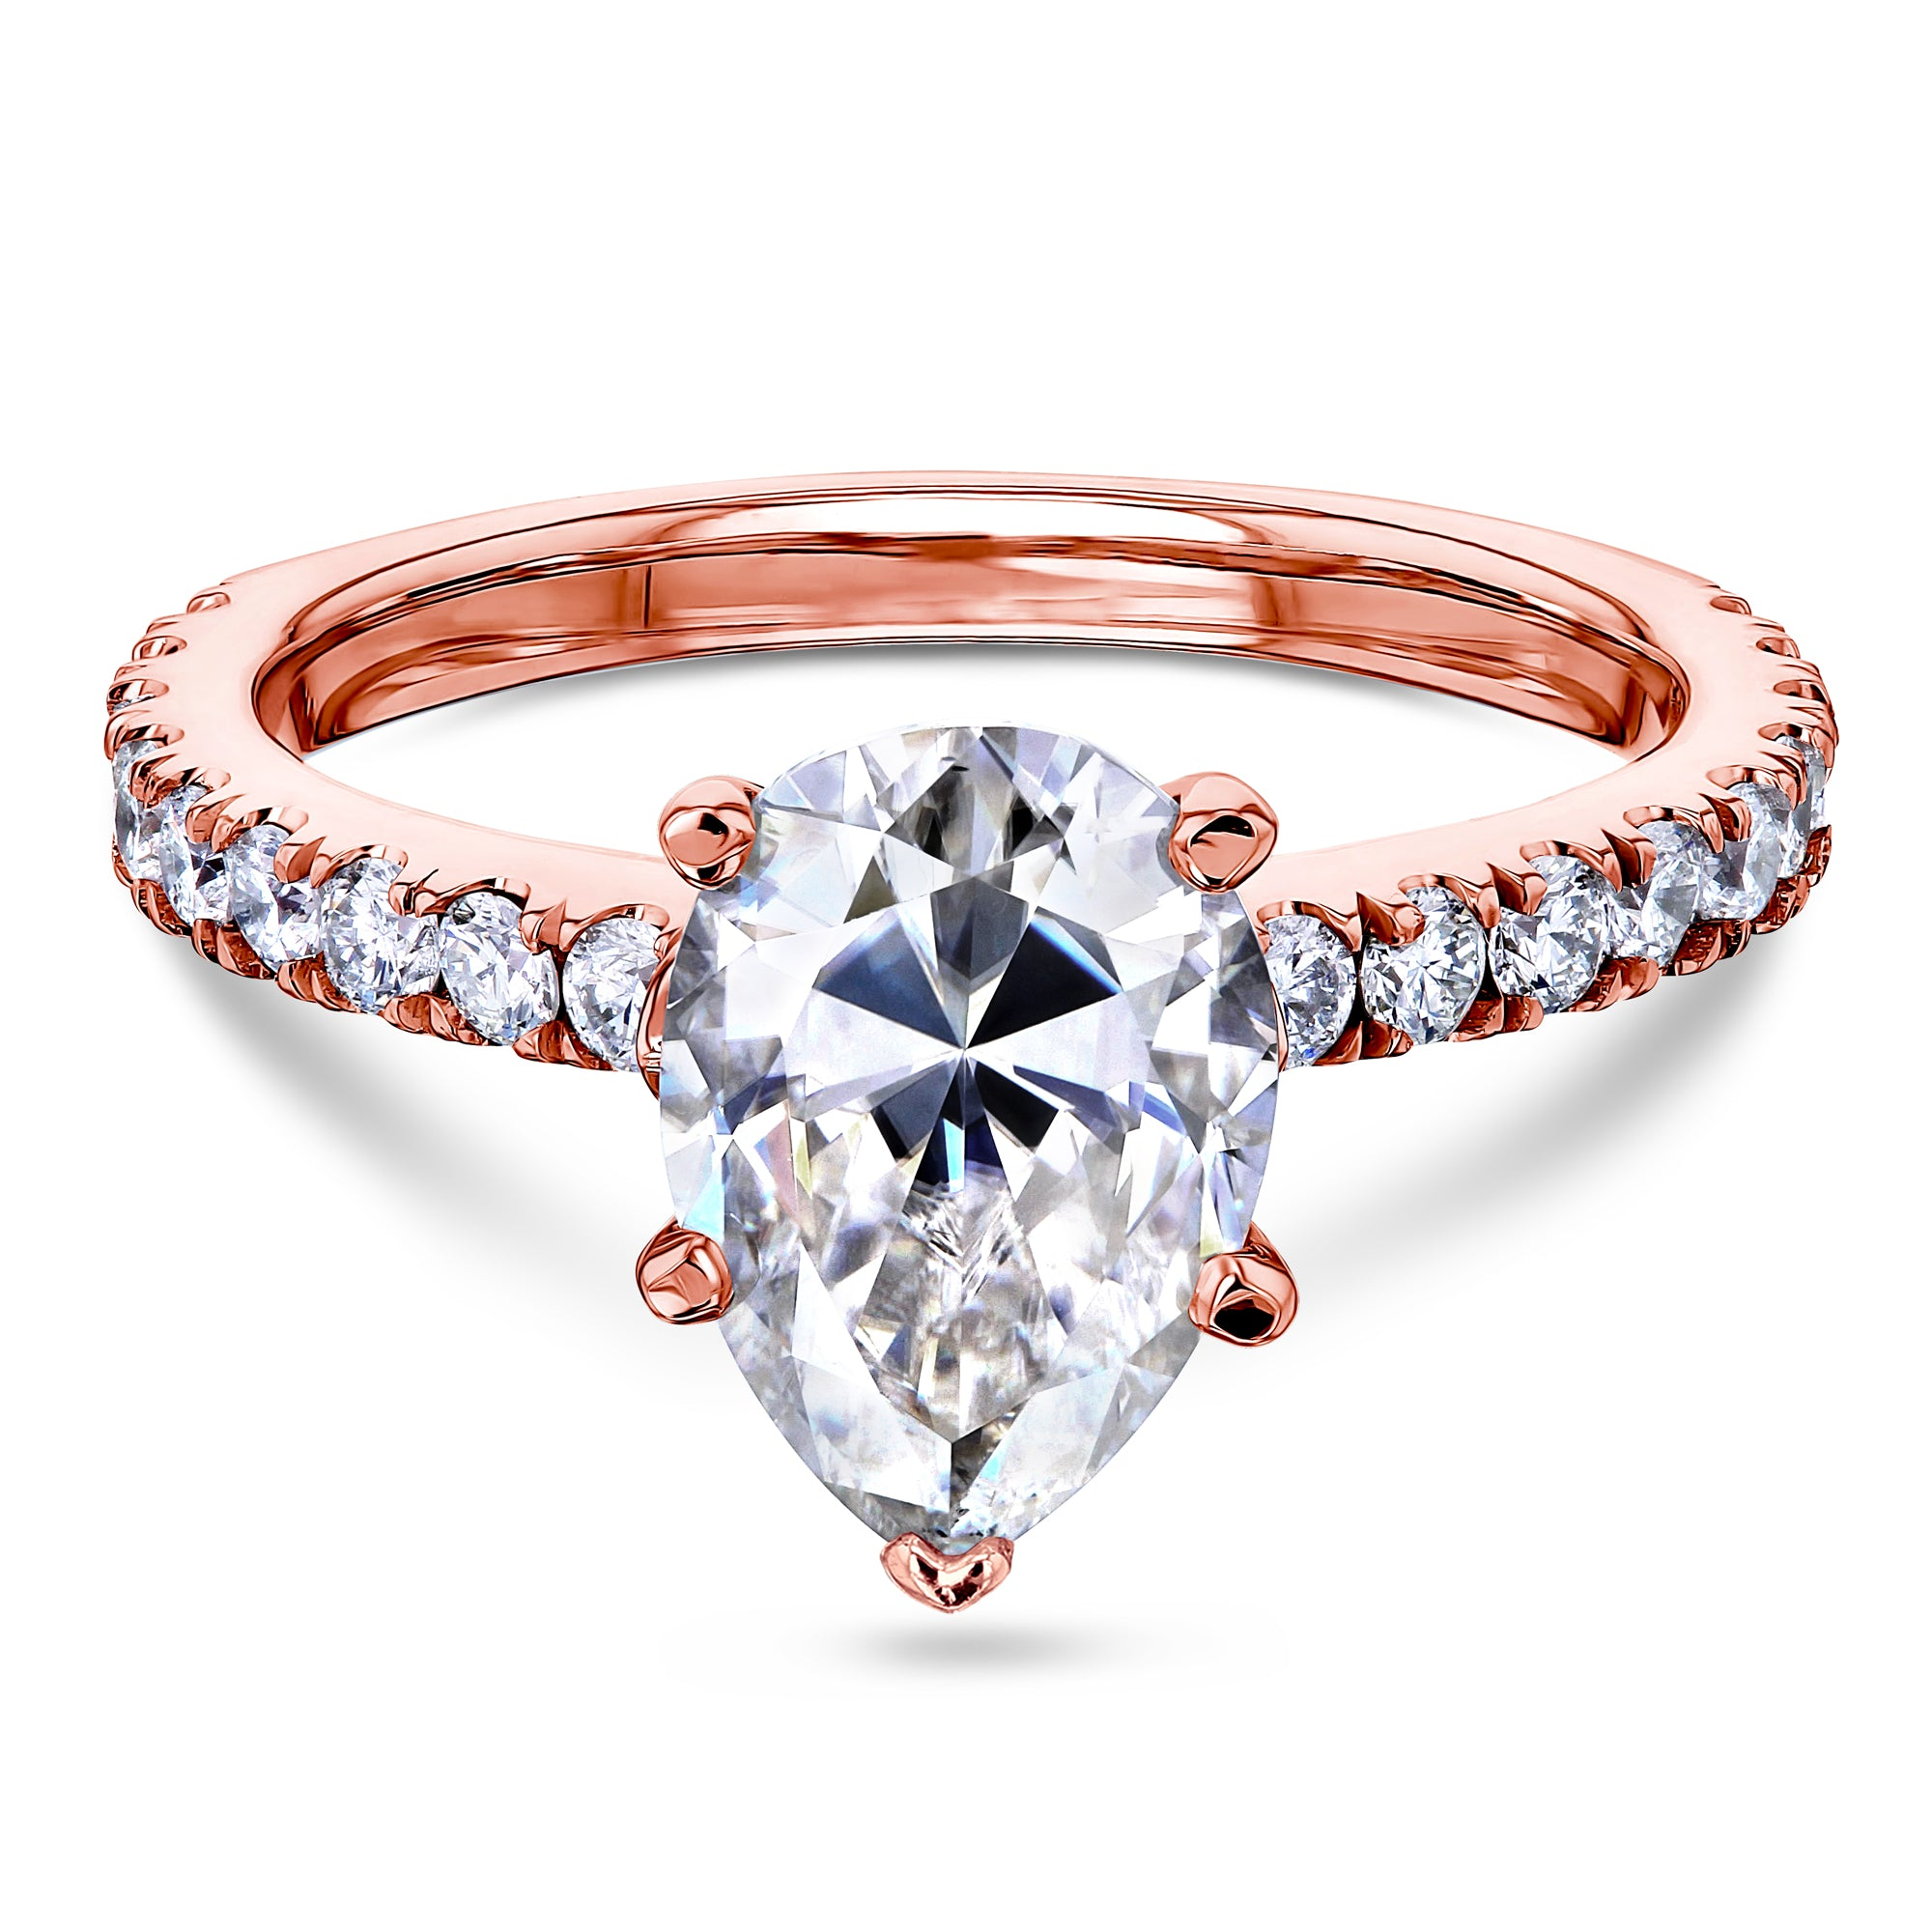 Cheap 2.1ct Pear Moissanite Ring - rose-gold 7.5 Forever One D-E-F